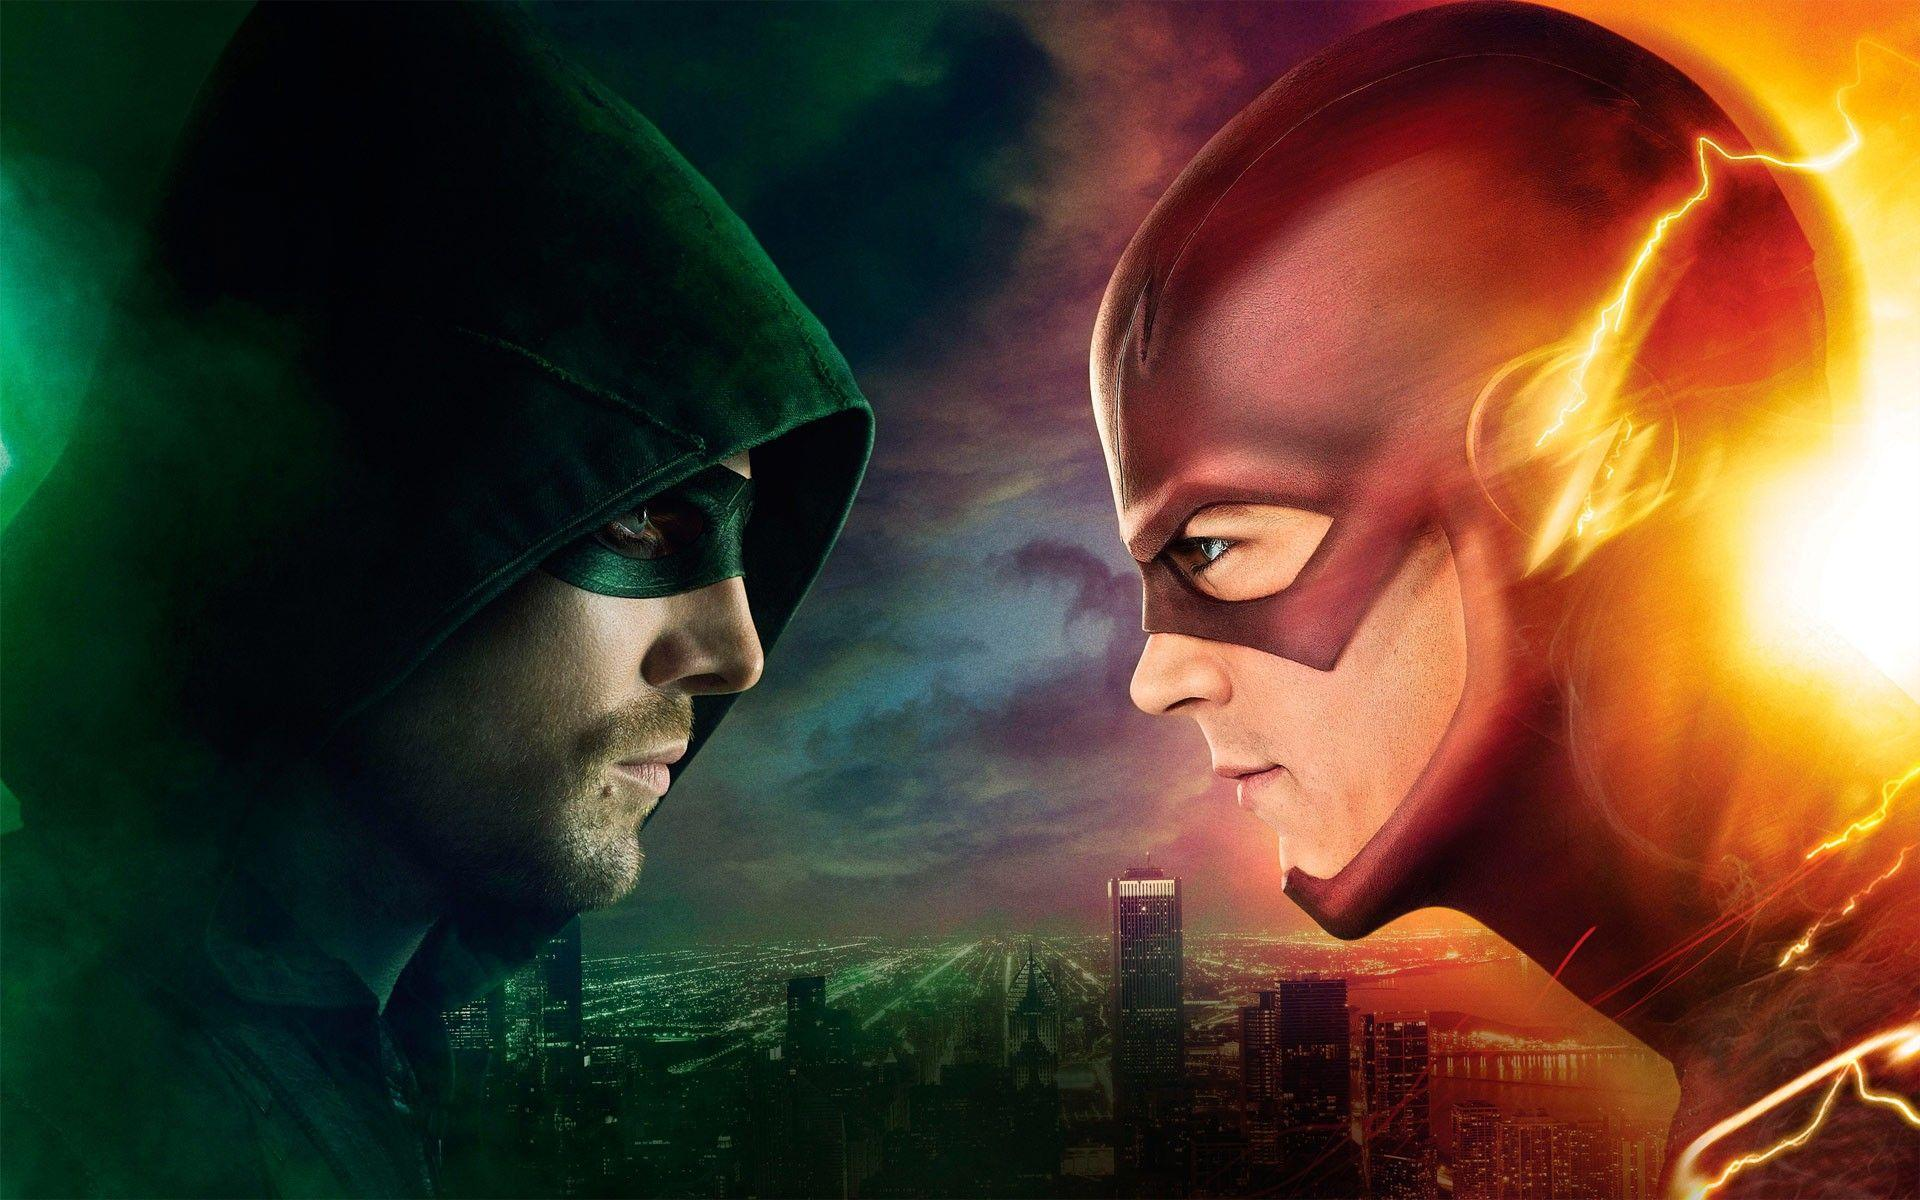 The Flash CW wallpapers – wallpapers free download